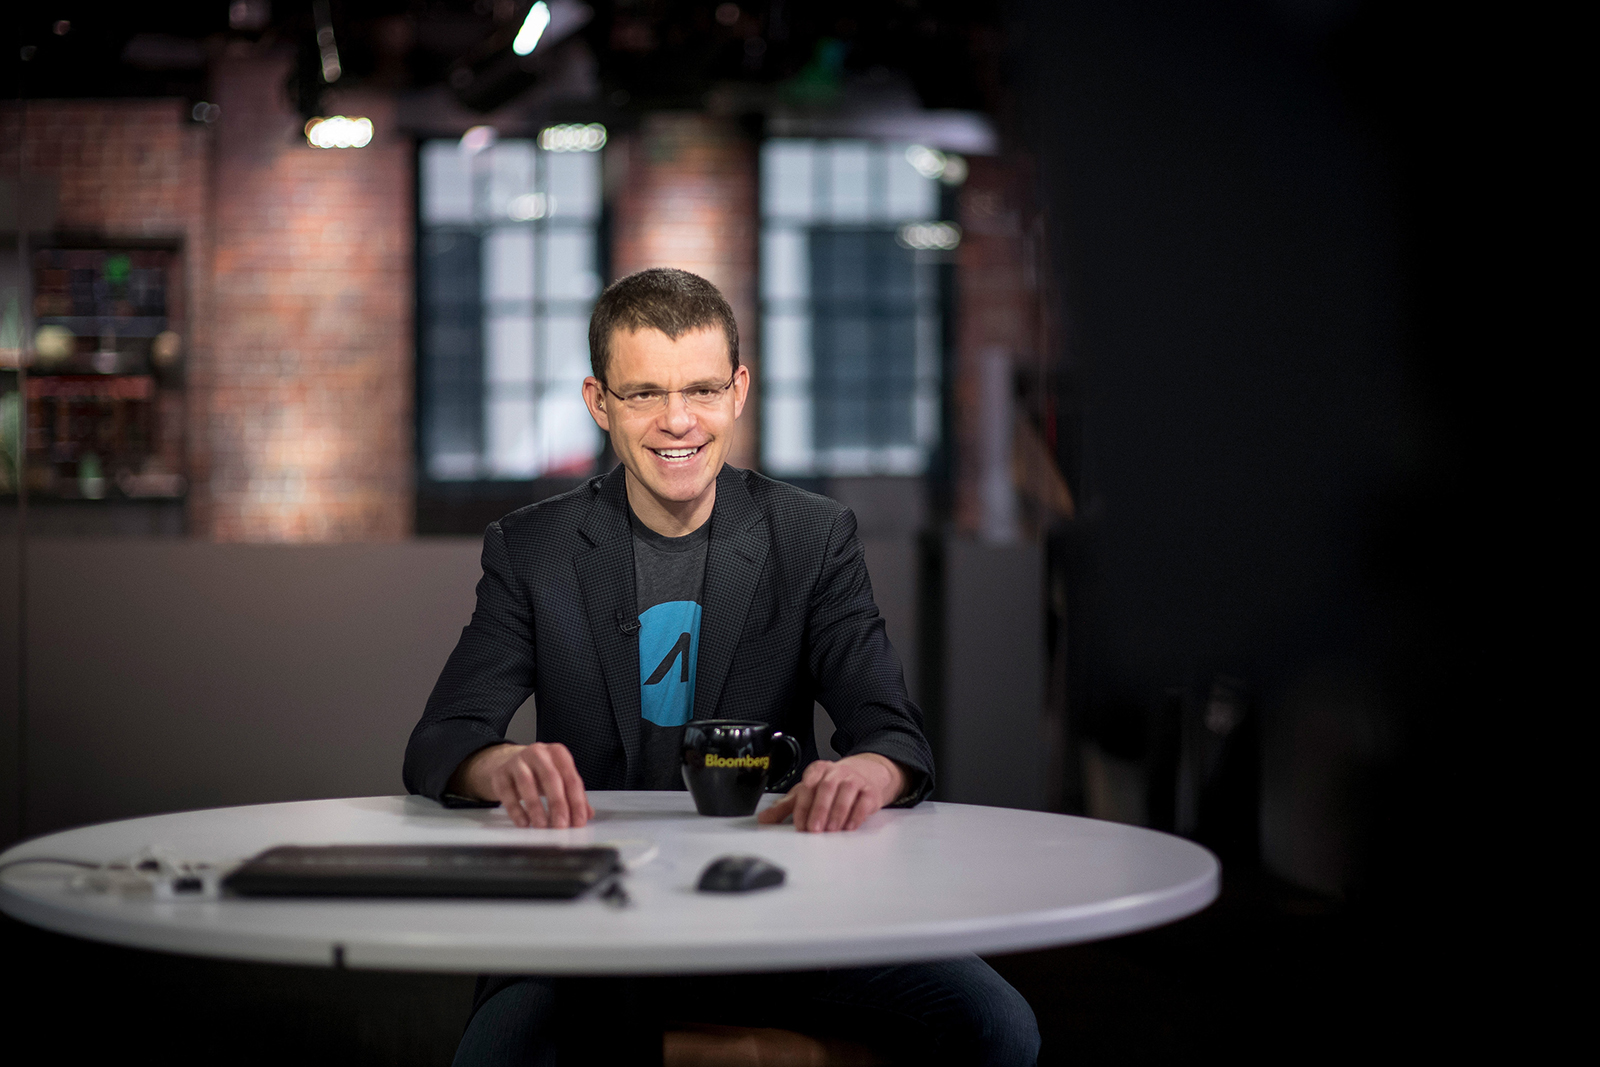 Max Levchin during an interview in San Francisco, California, in 2018.